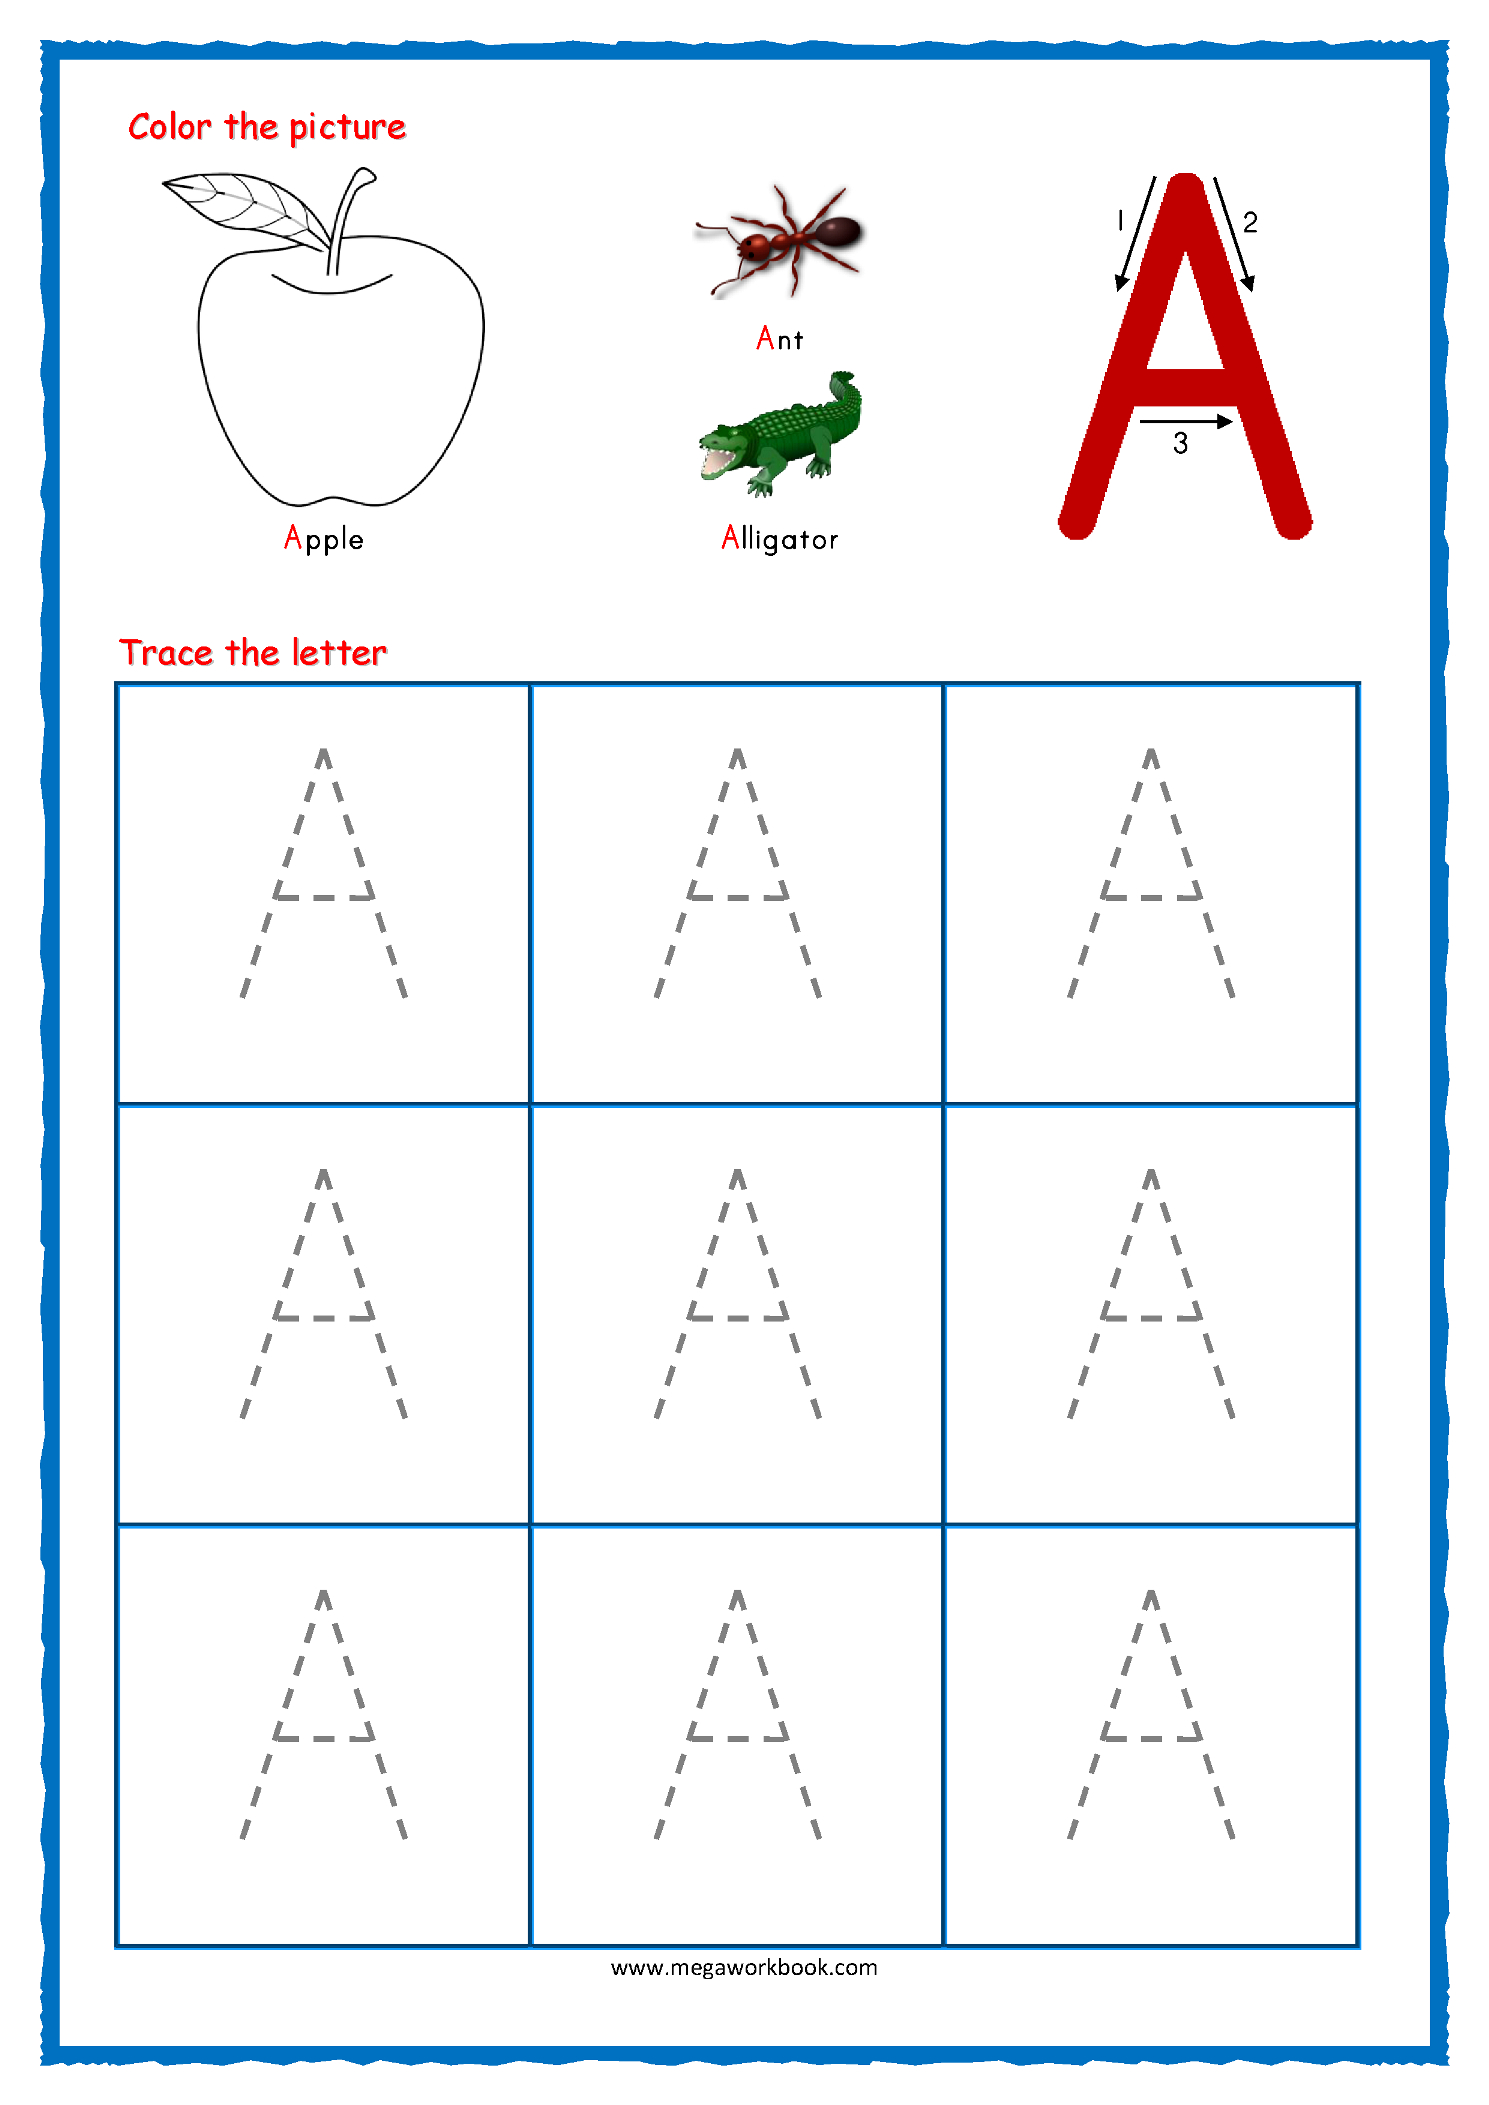 Tracing Letters - Alphabet Tracing - Capital Letters for Alphabet Tracing Printables